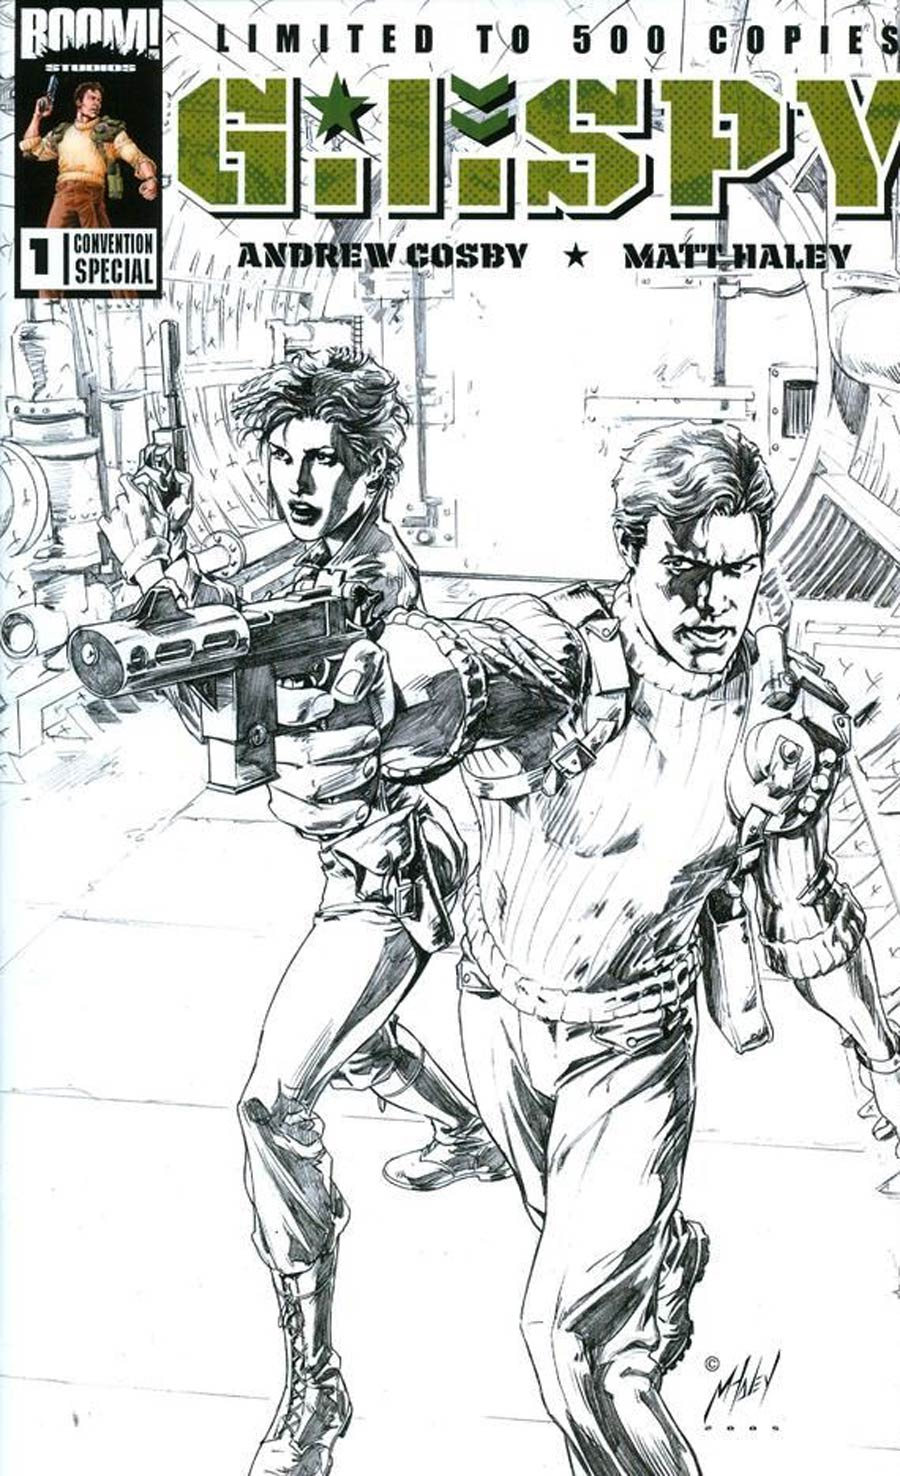 GI Spy #1 Cover C Convention Special